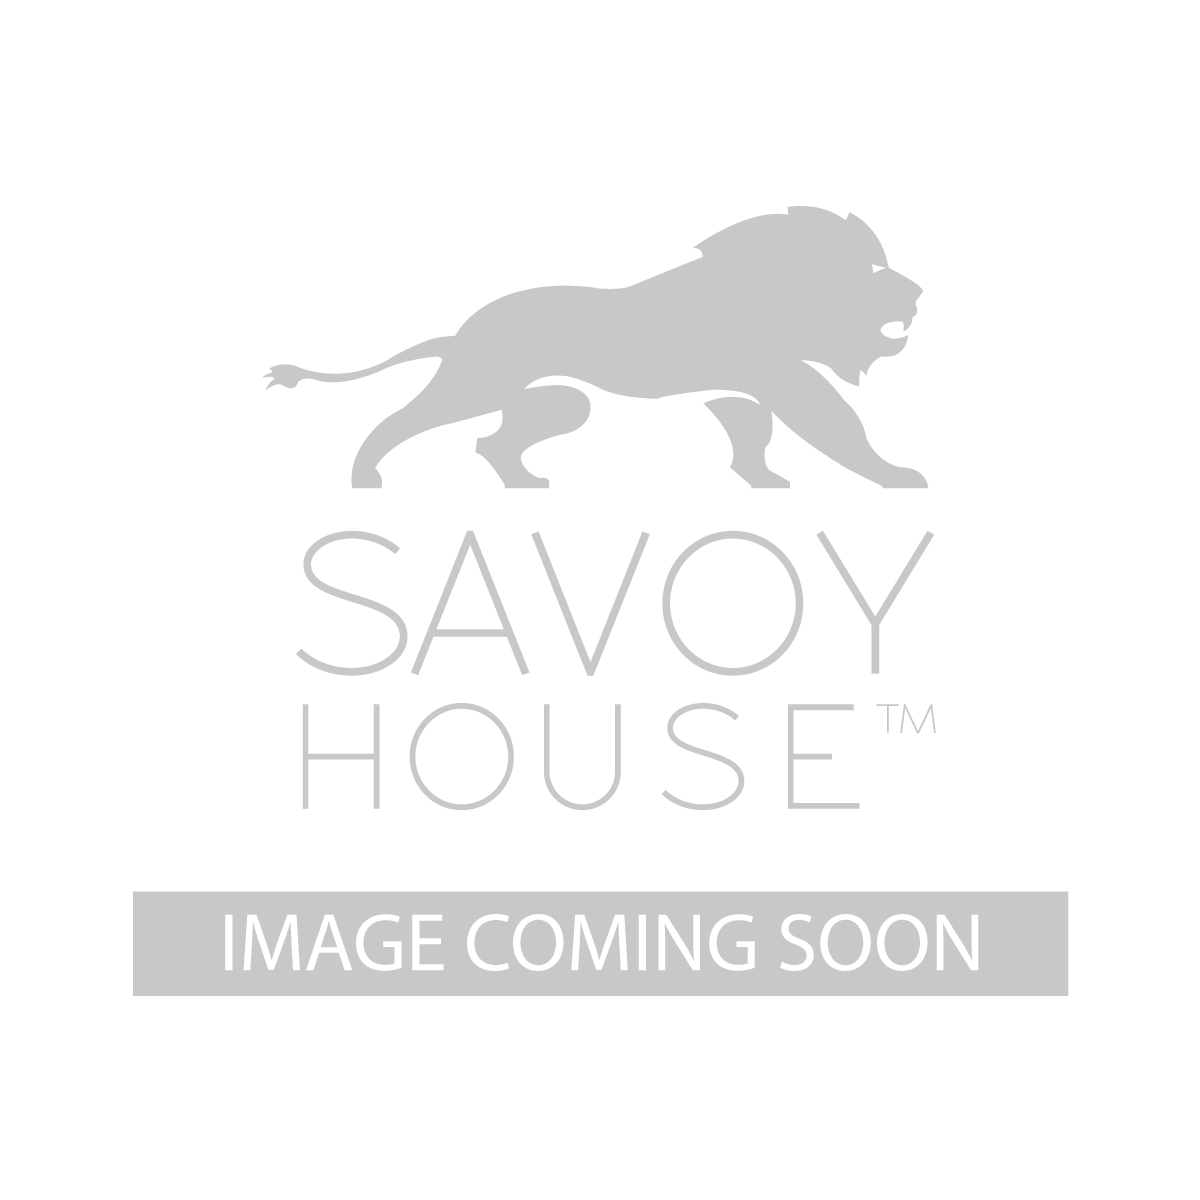 1 7405 12 39 mallory 12 light chandelier by savoy house for Savoy house com